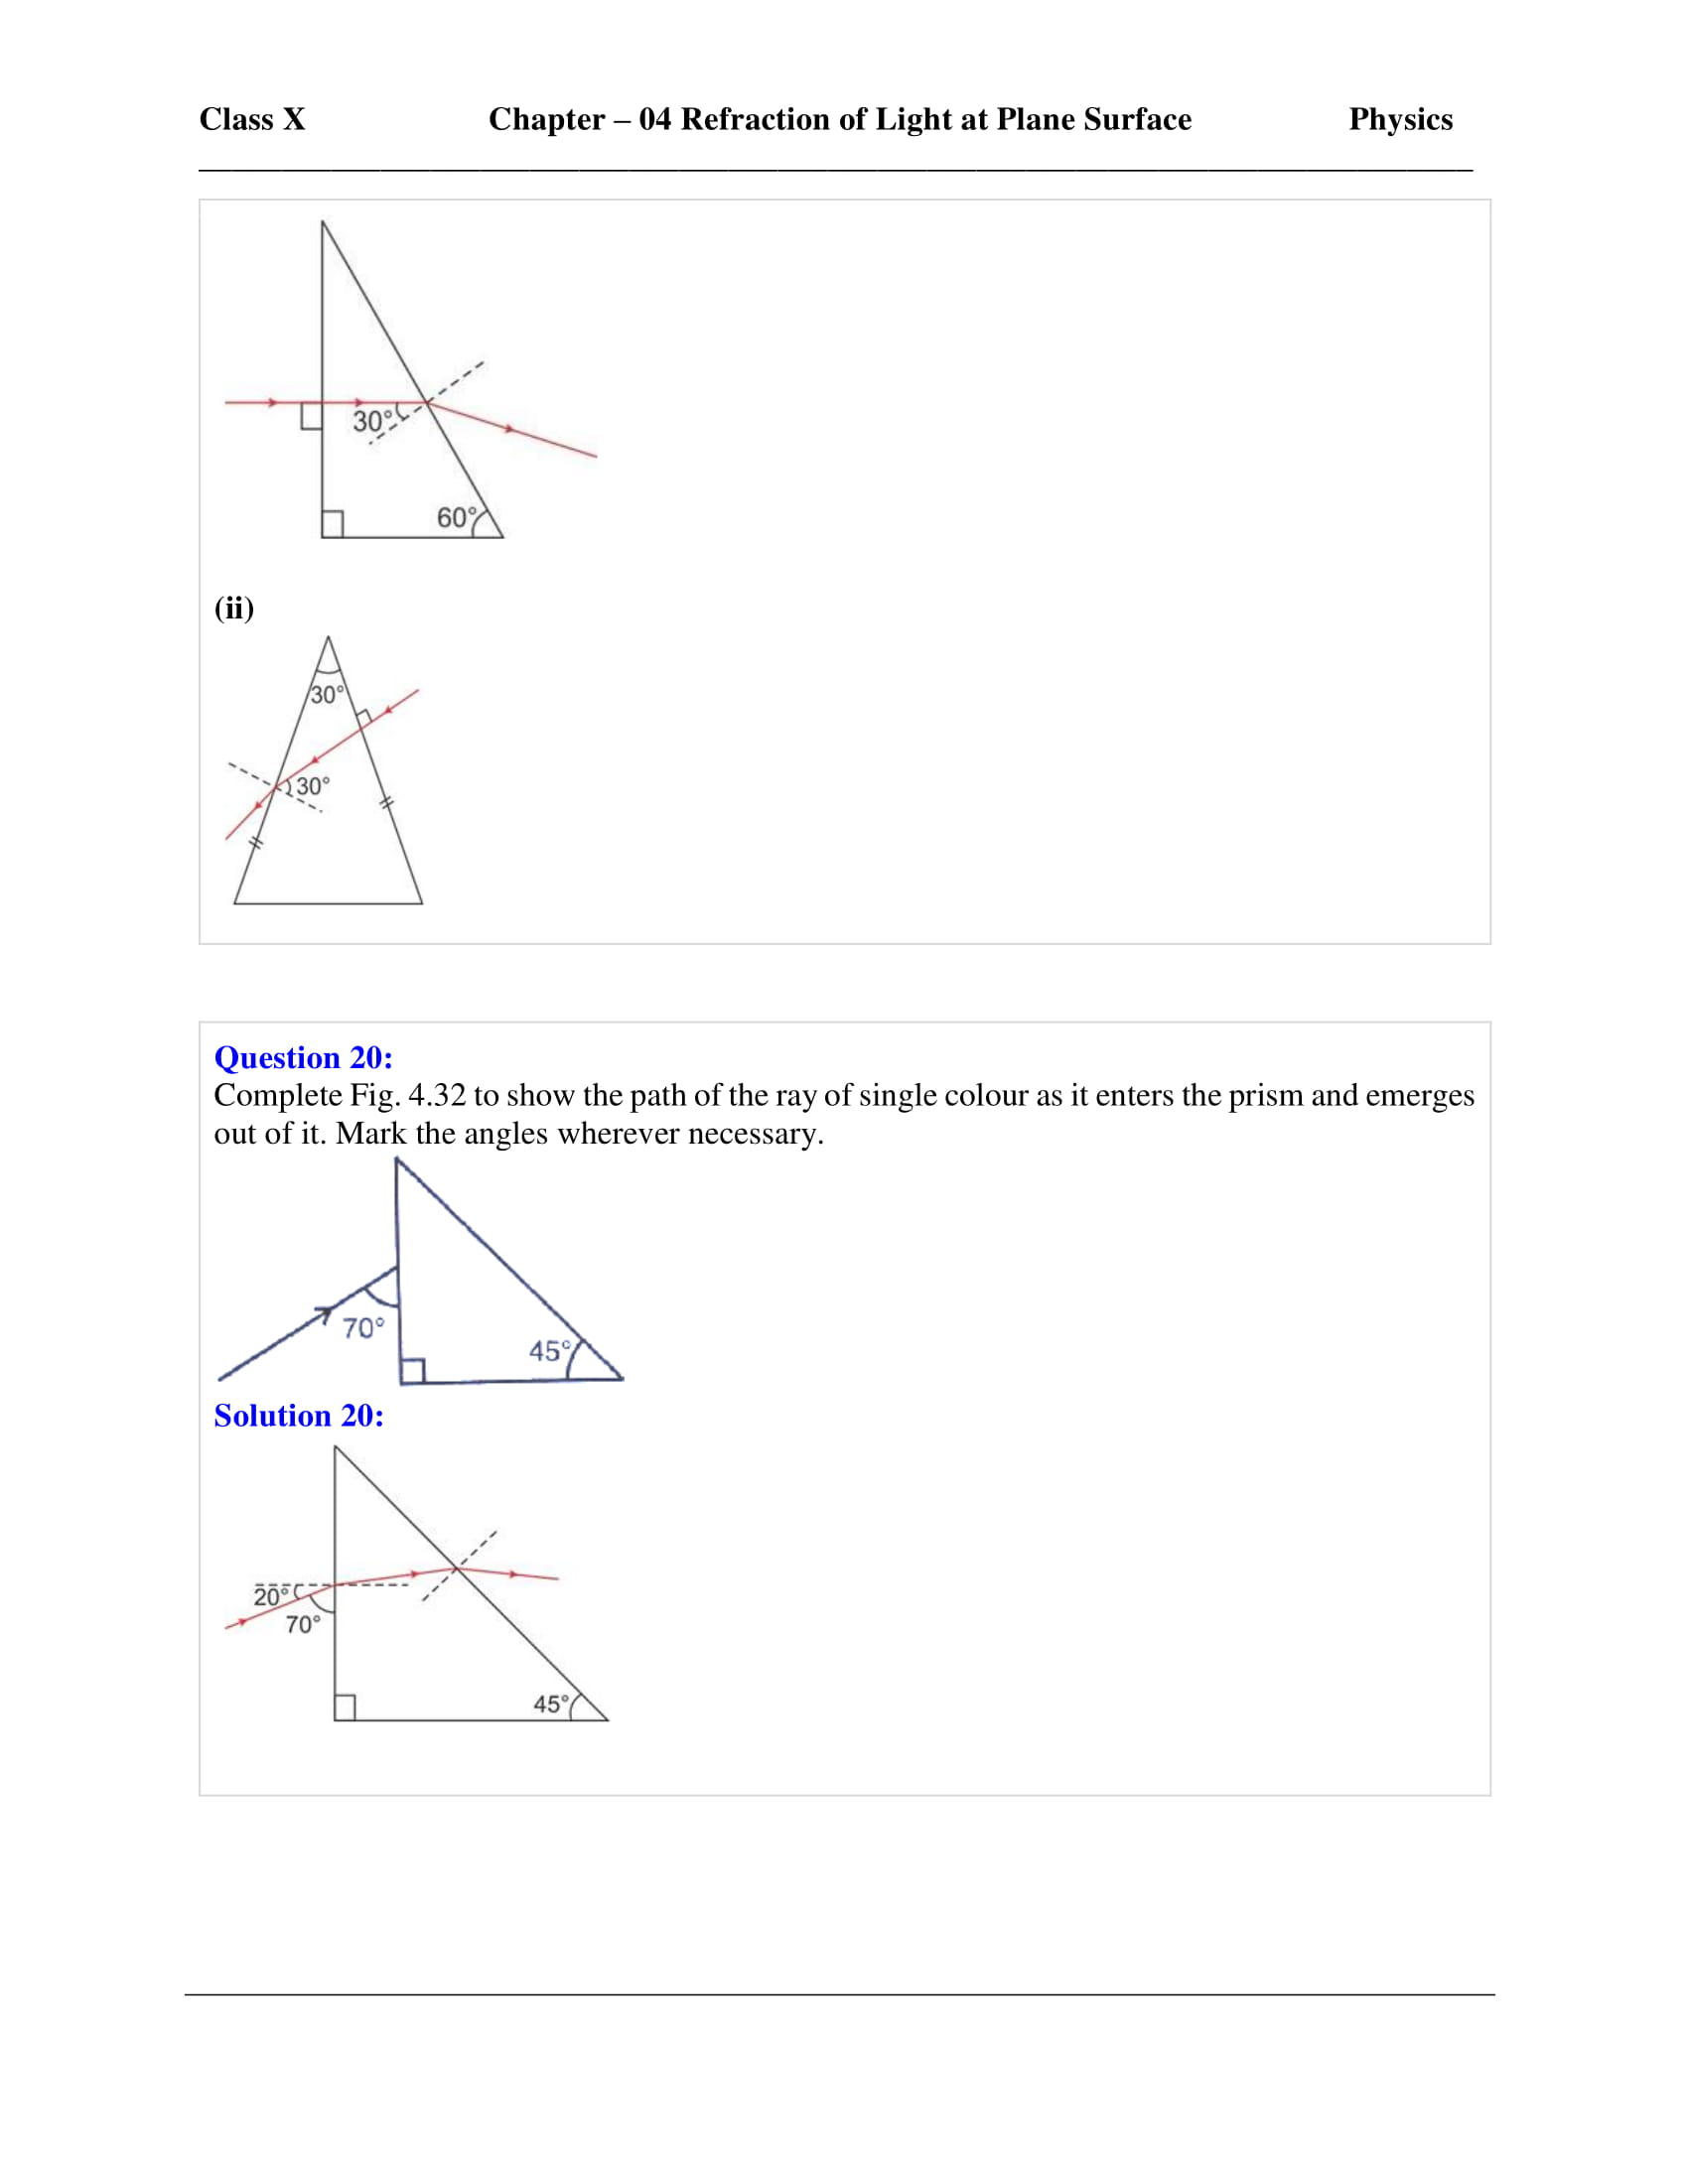 icse-selina-physics-solutions-class-10-chapter-4-refraction-of-light-at-plane-surfaces-20